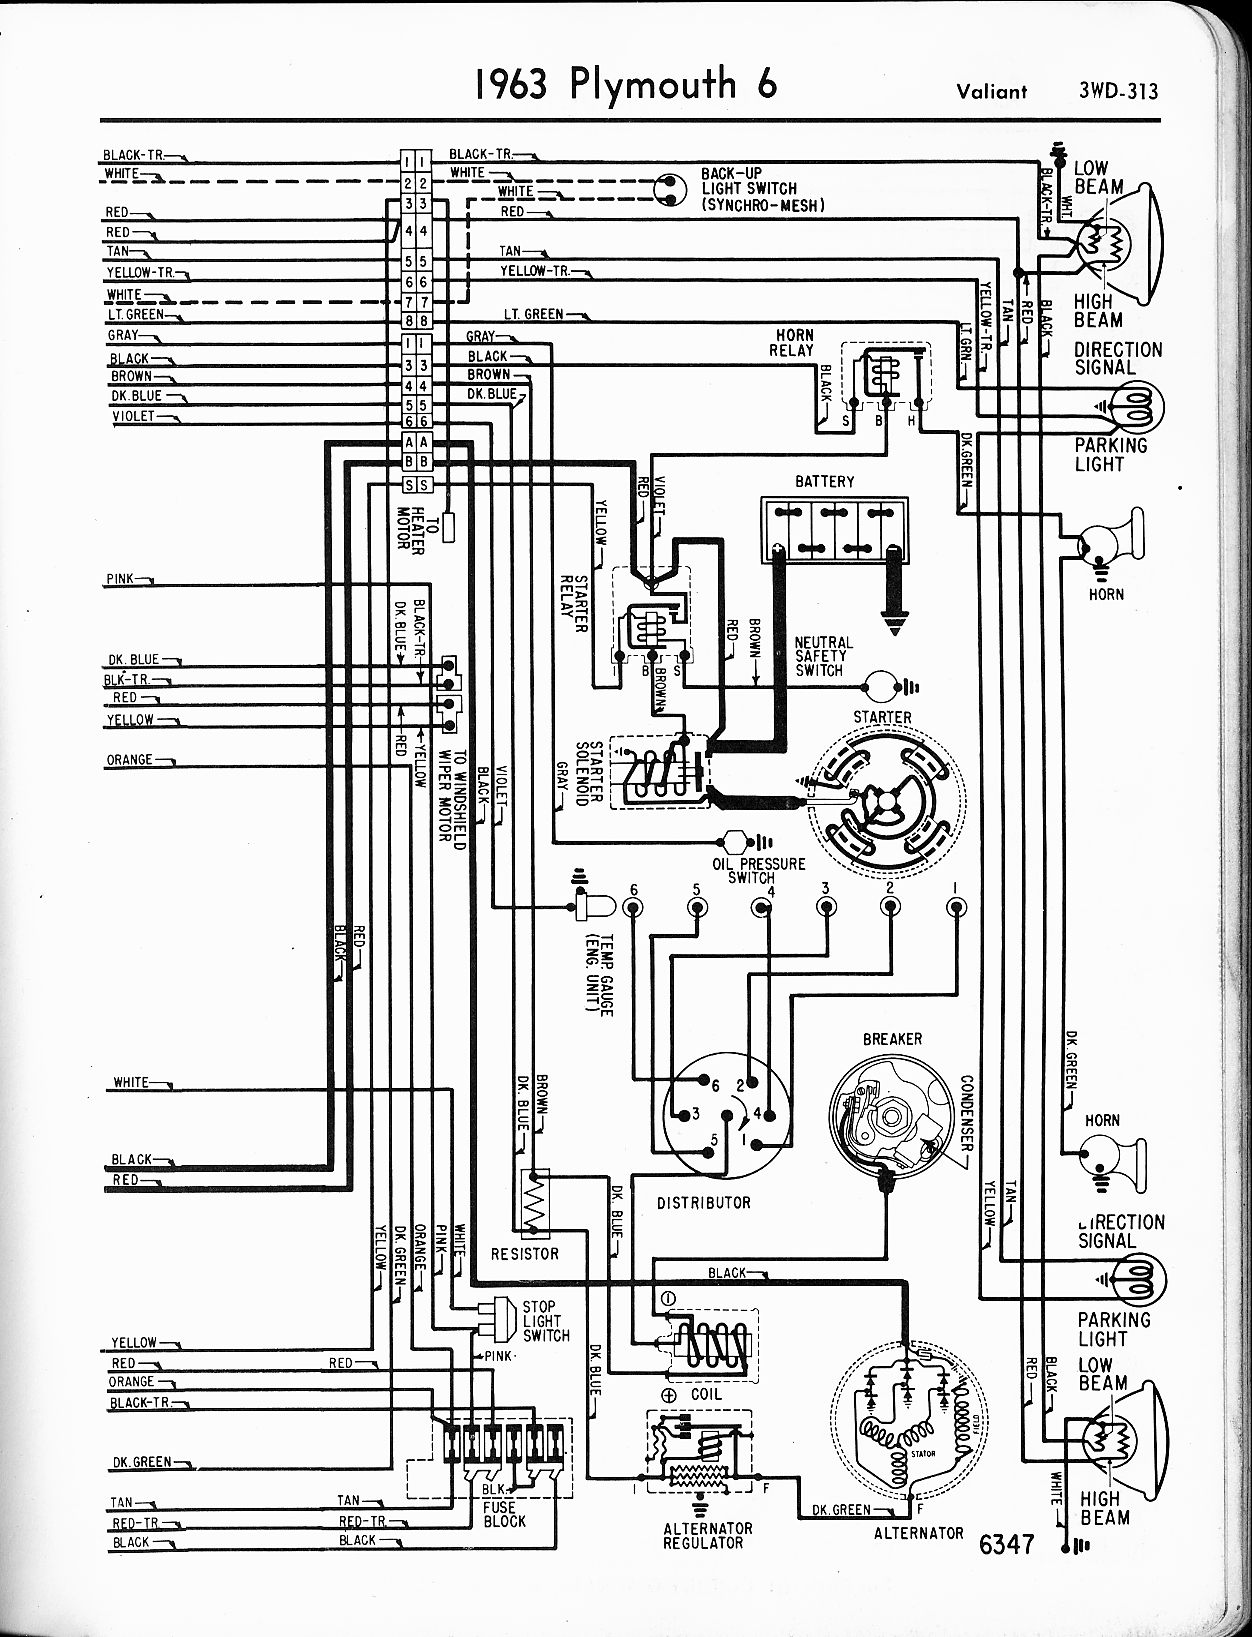 1956 1965 plymouth wiring the old car manual project 1972 plymouth  roadrunner wiring diagram 1972 plymouth